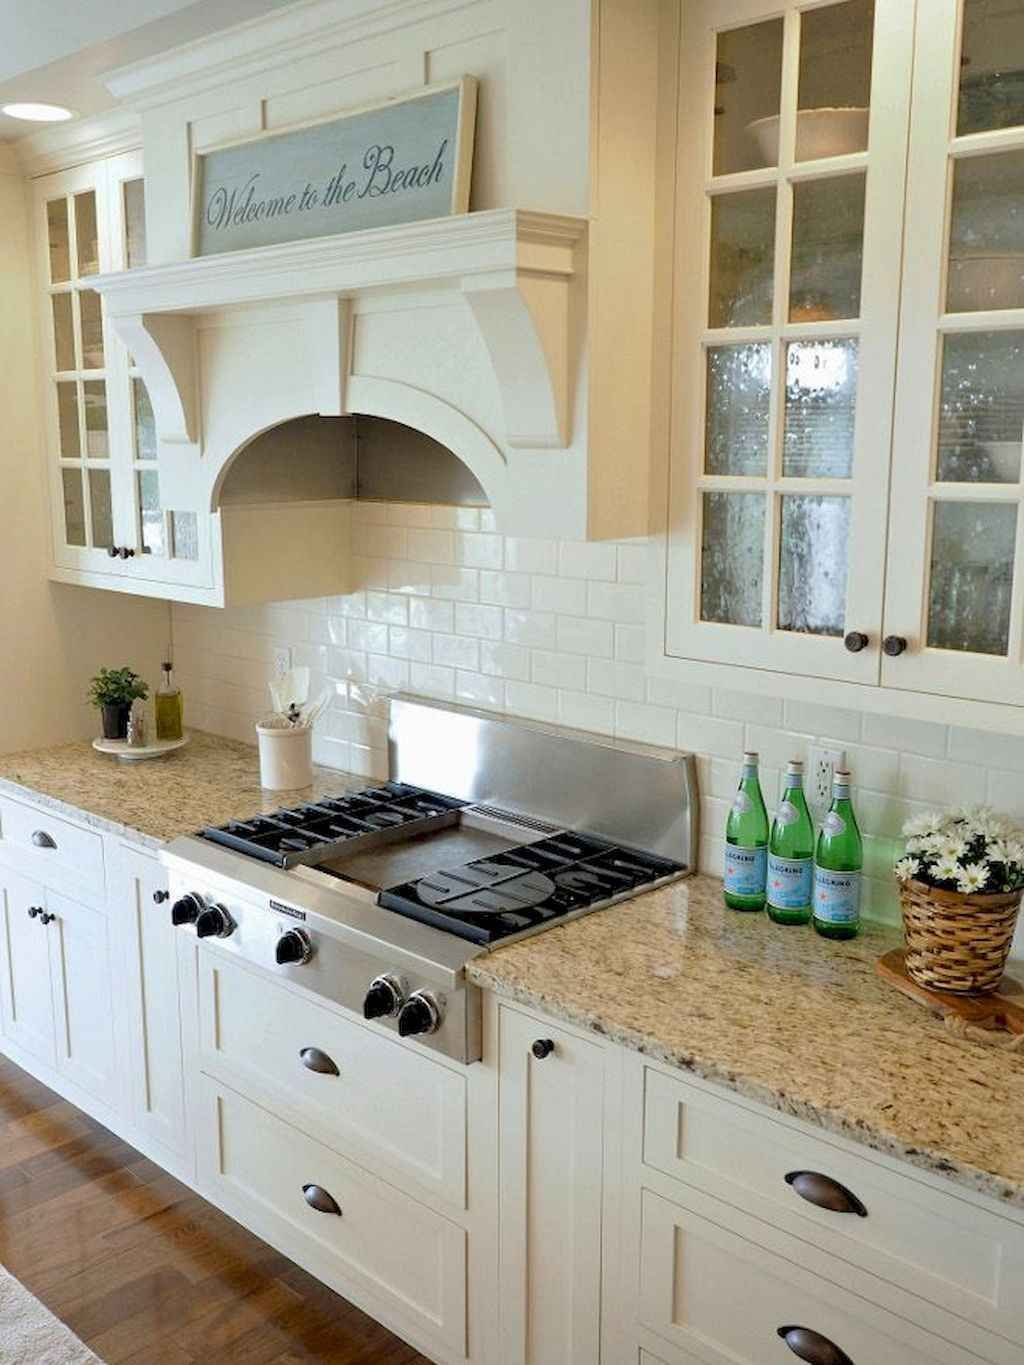 70 Beautiful White Kitchen Cabinet Makeover Ideas Kitchen Cabinets Decor Ivory Kitchen Cabinets Kitchen Design